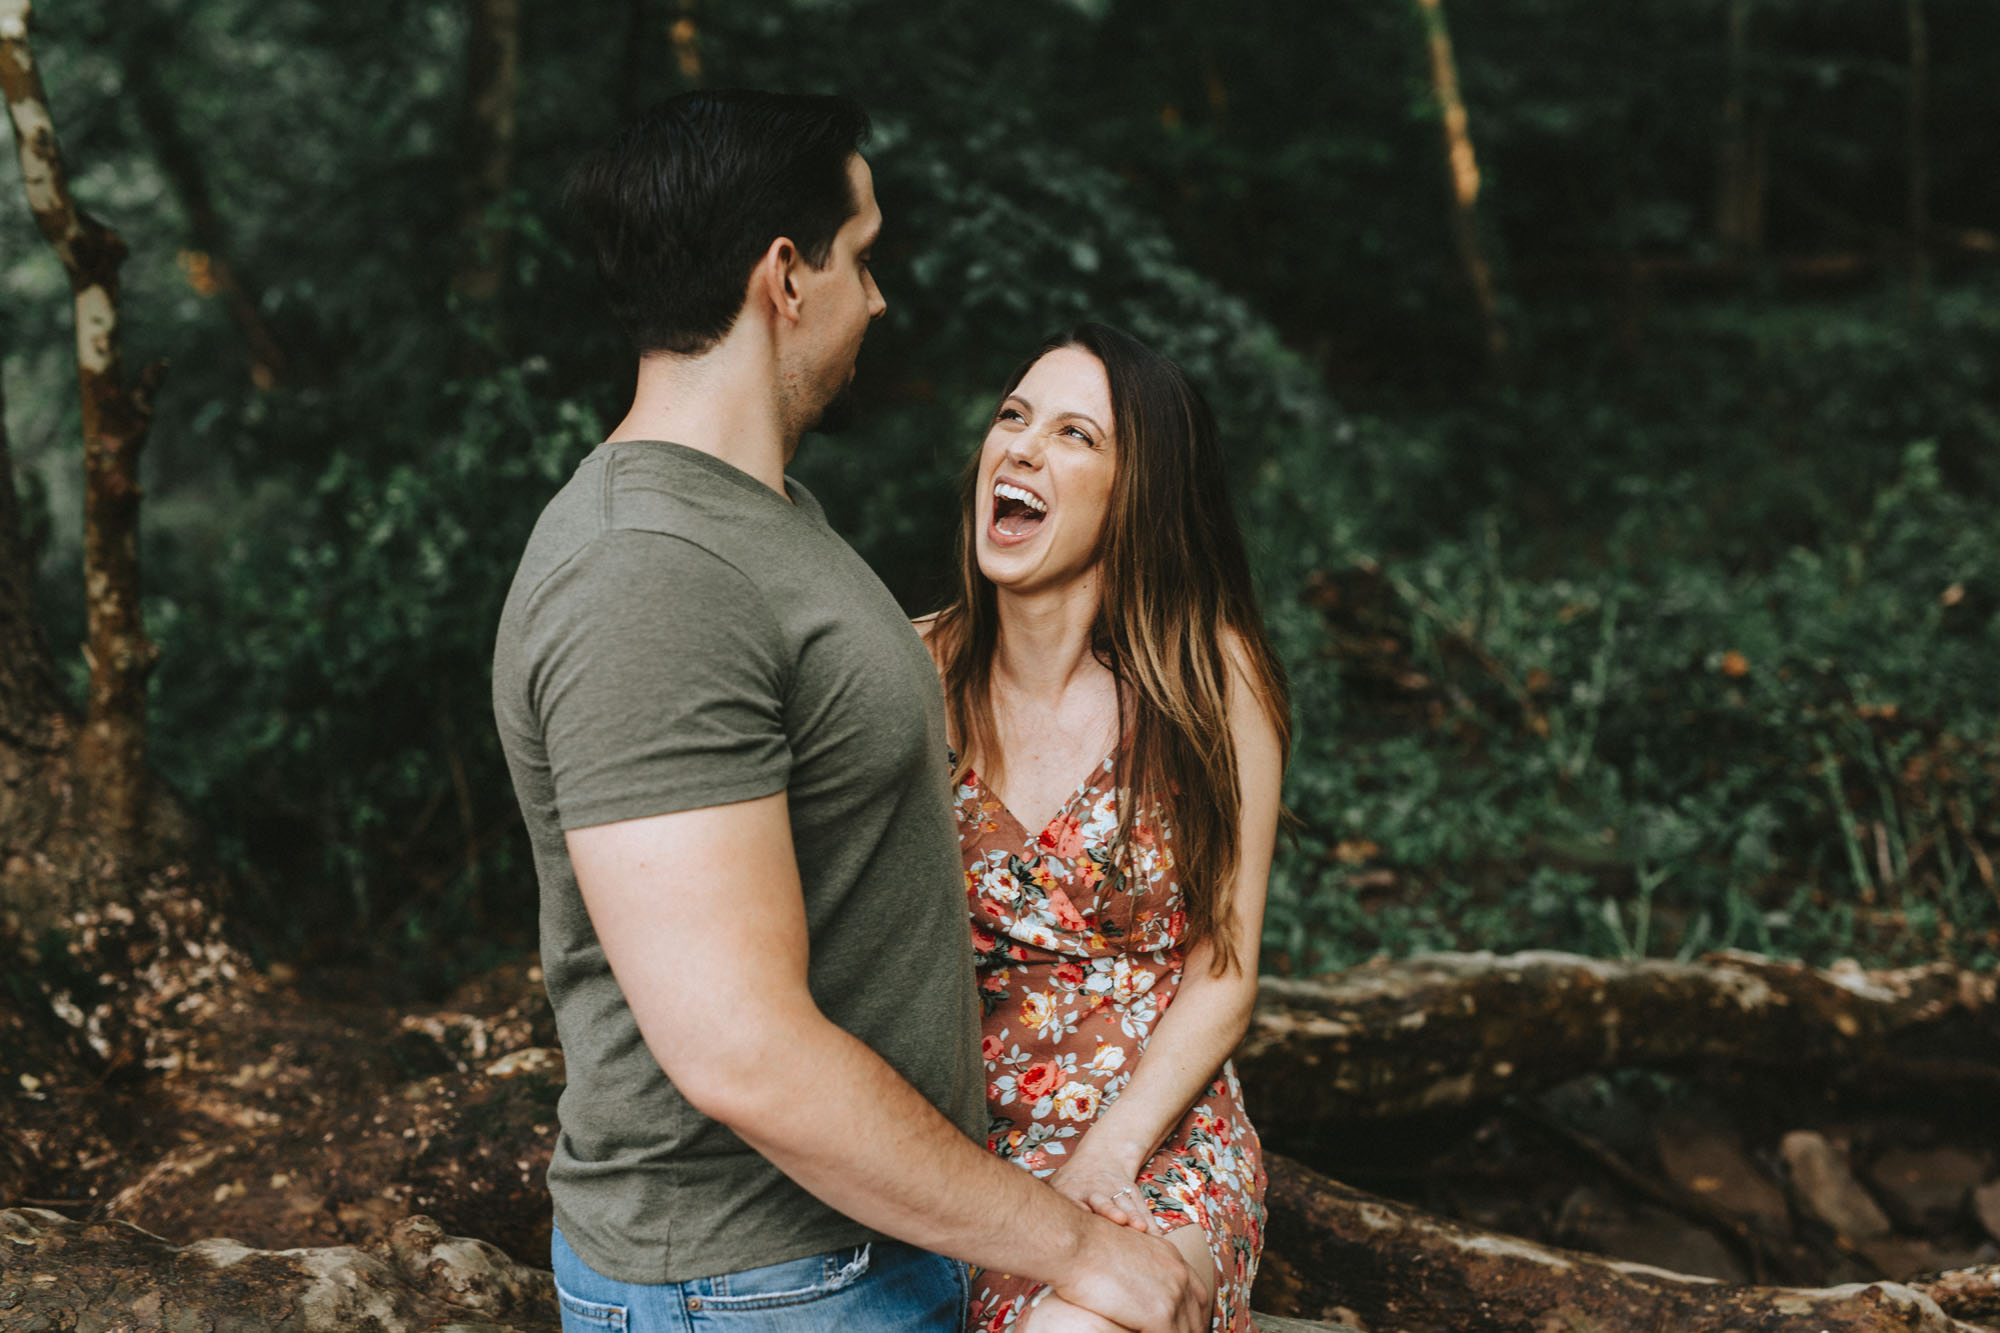 Twisted-Oaks-Studio-Tyler-Park-Engagement-9775.jpg